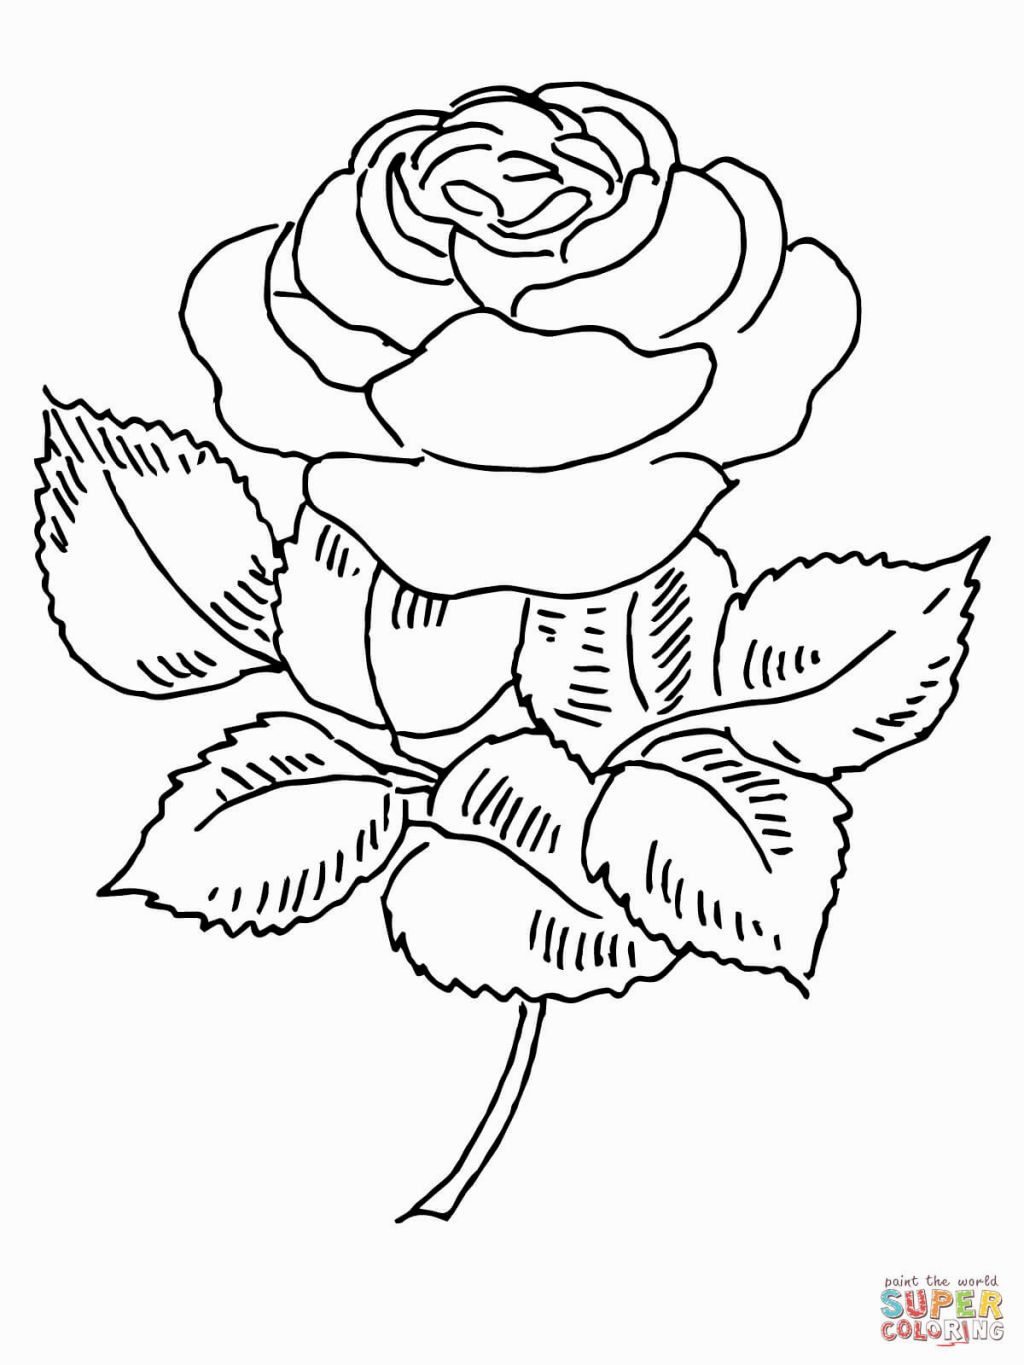 Rose Coloring Pages Rose Coloring Pages Flower Coloring Pages Free Coloring Pages